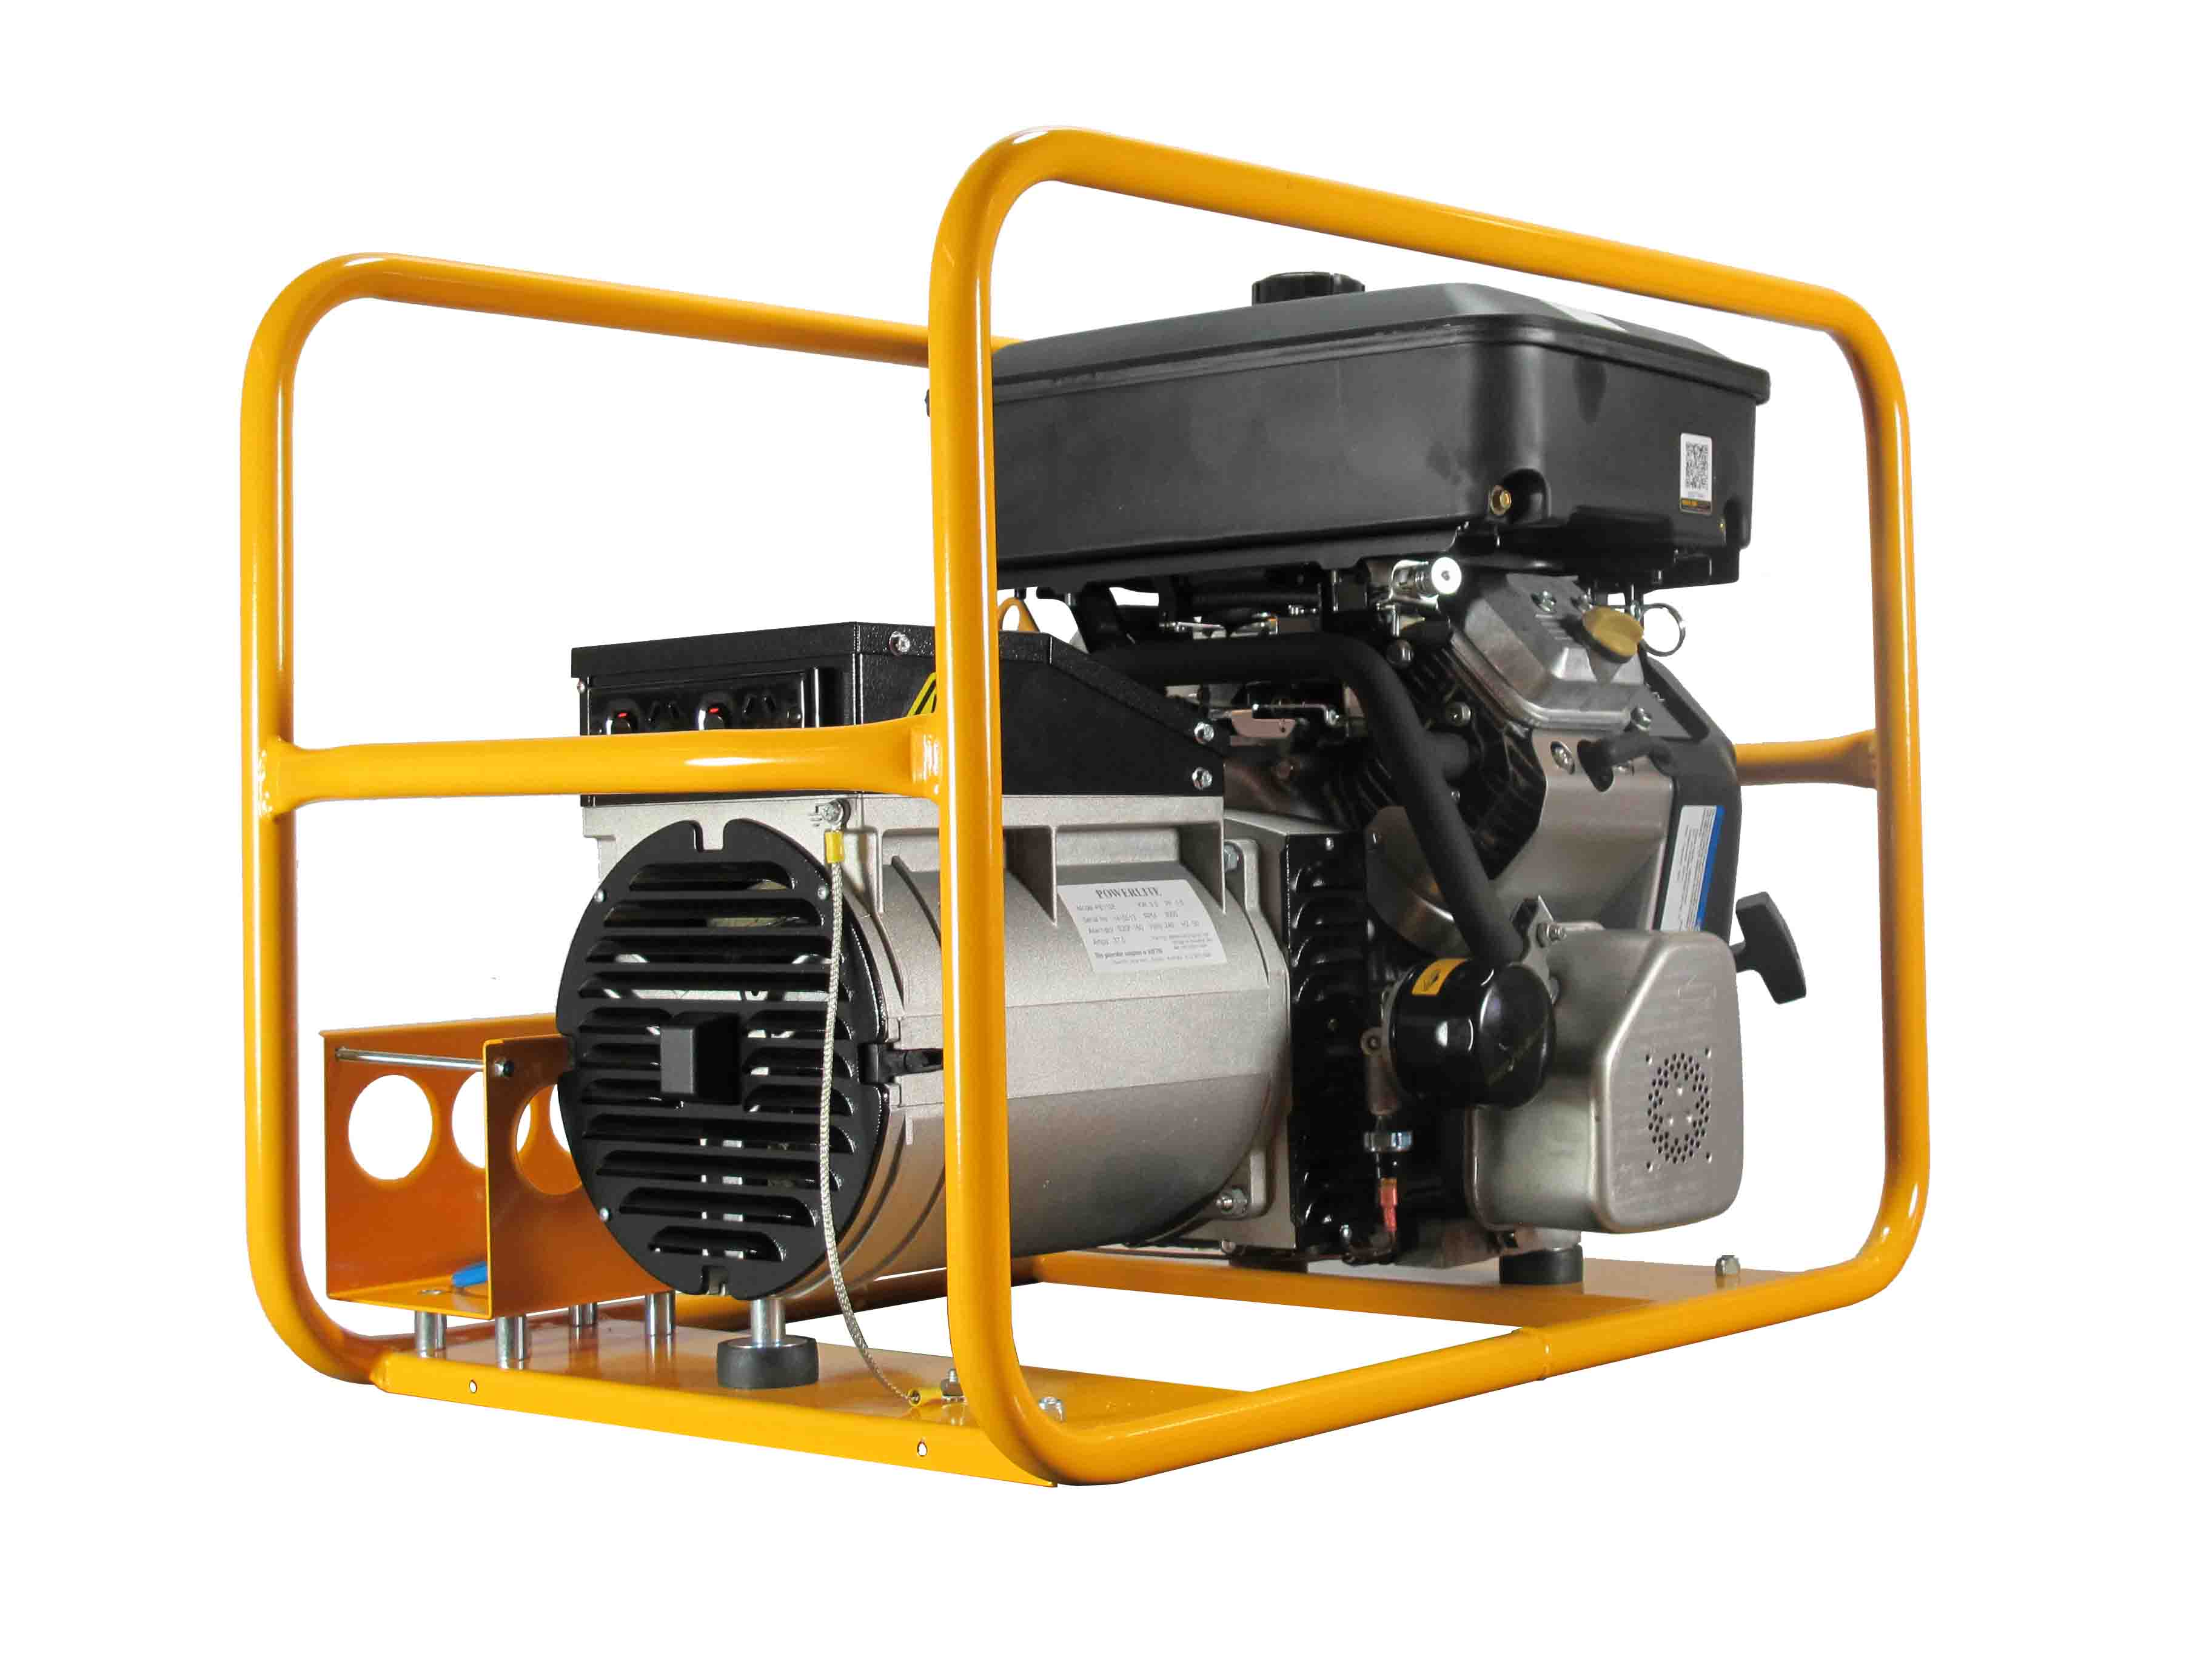 PB100E – 8 000W Generator with battery